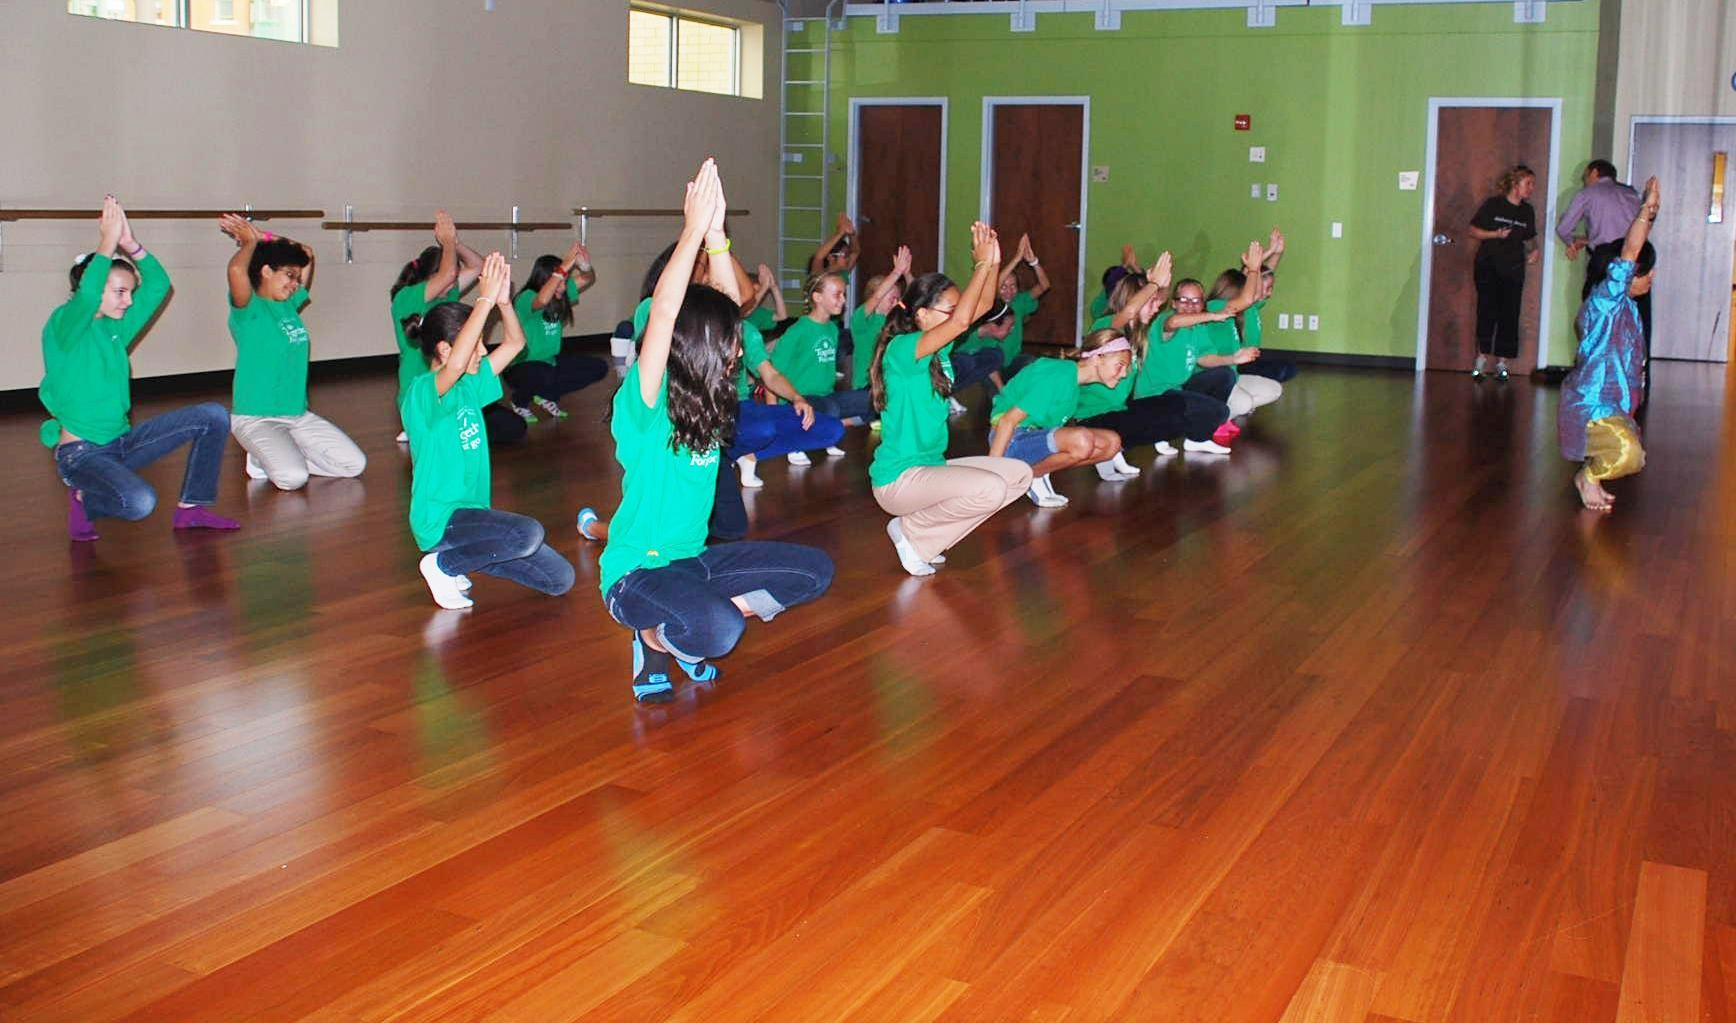 Students warm up before dance class